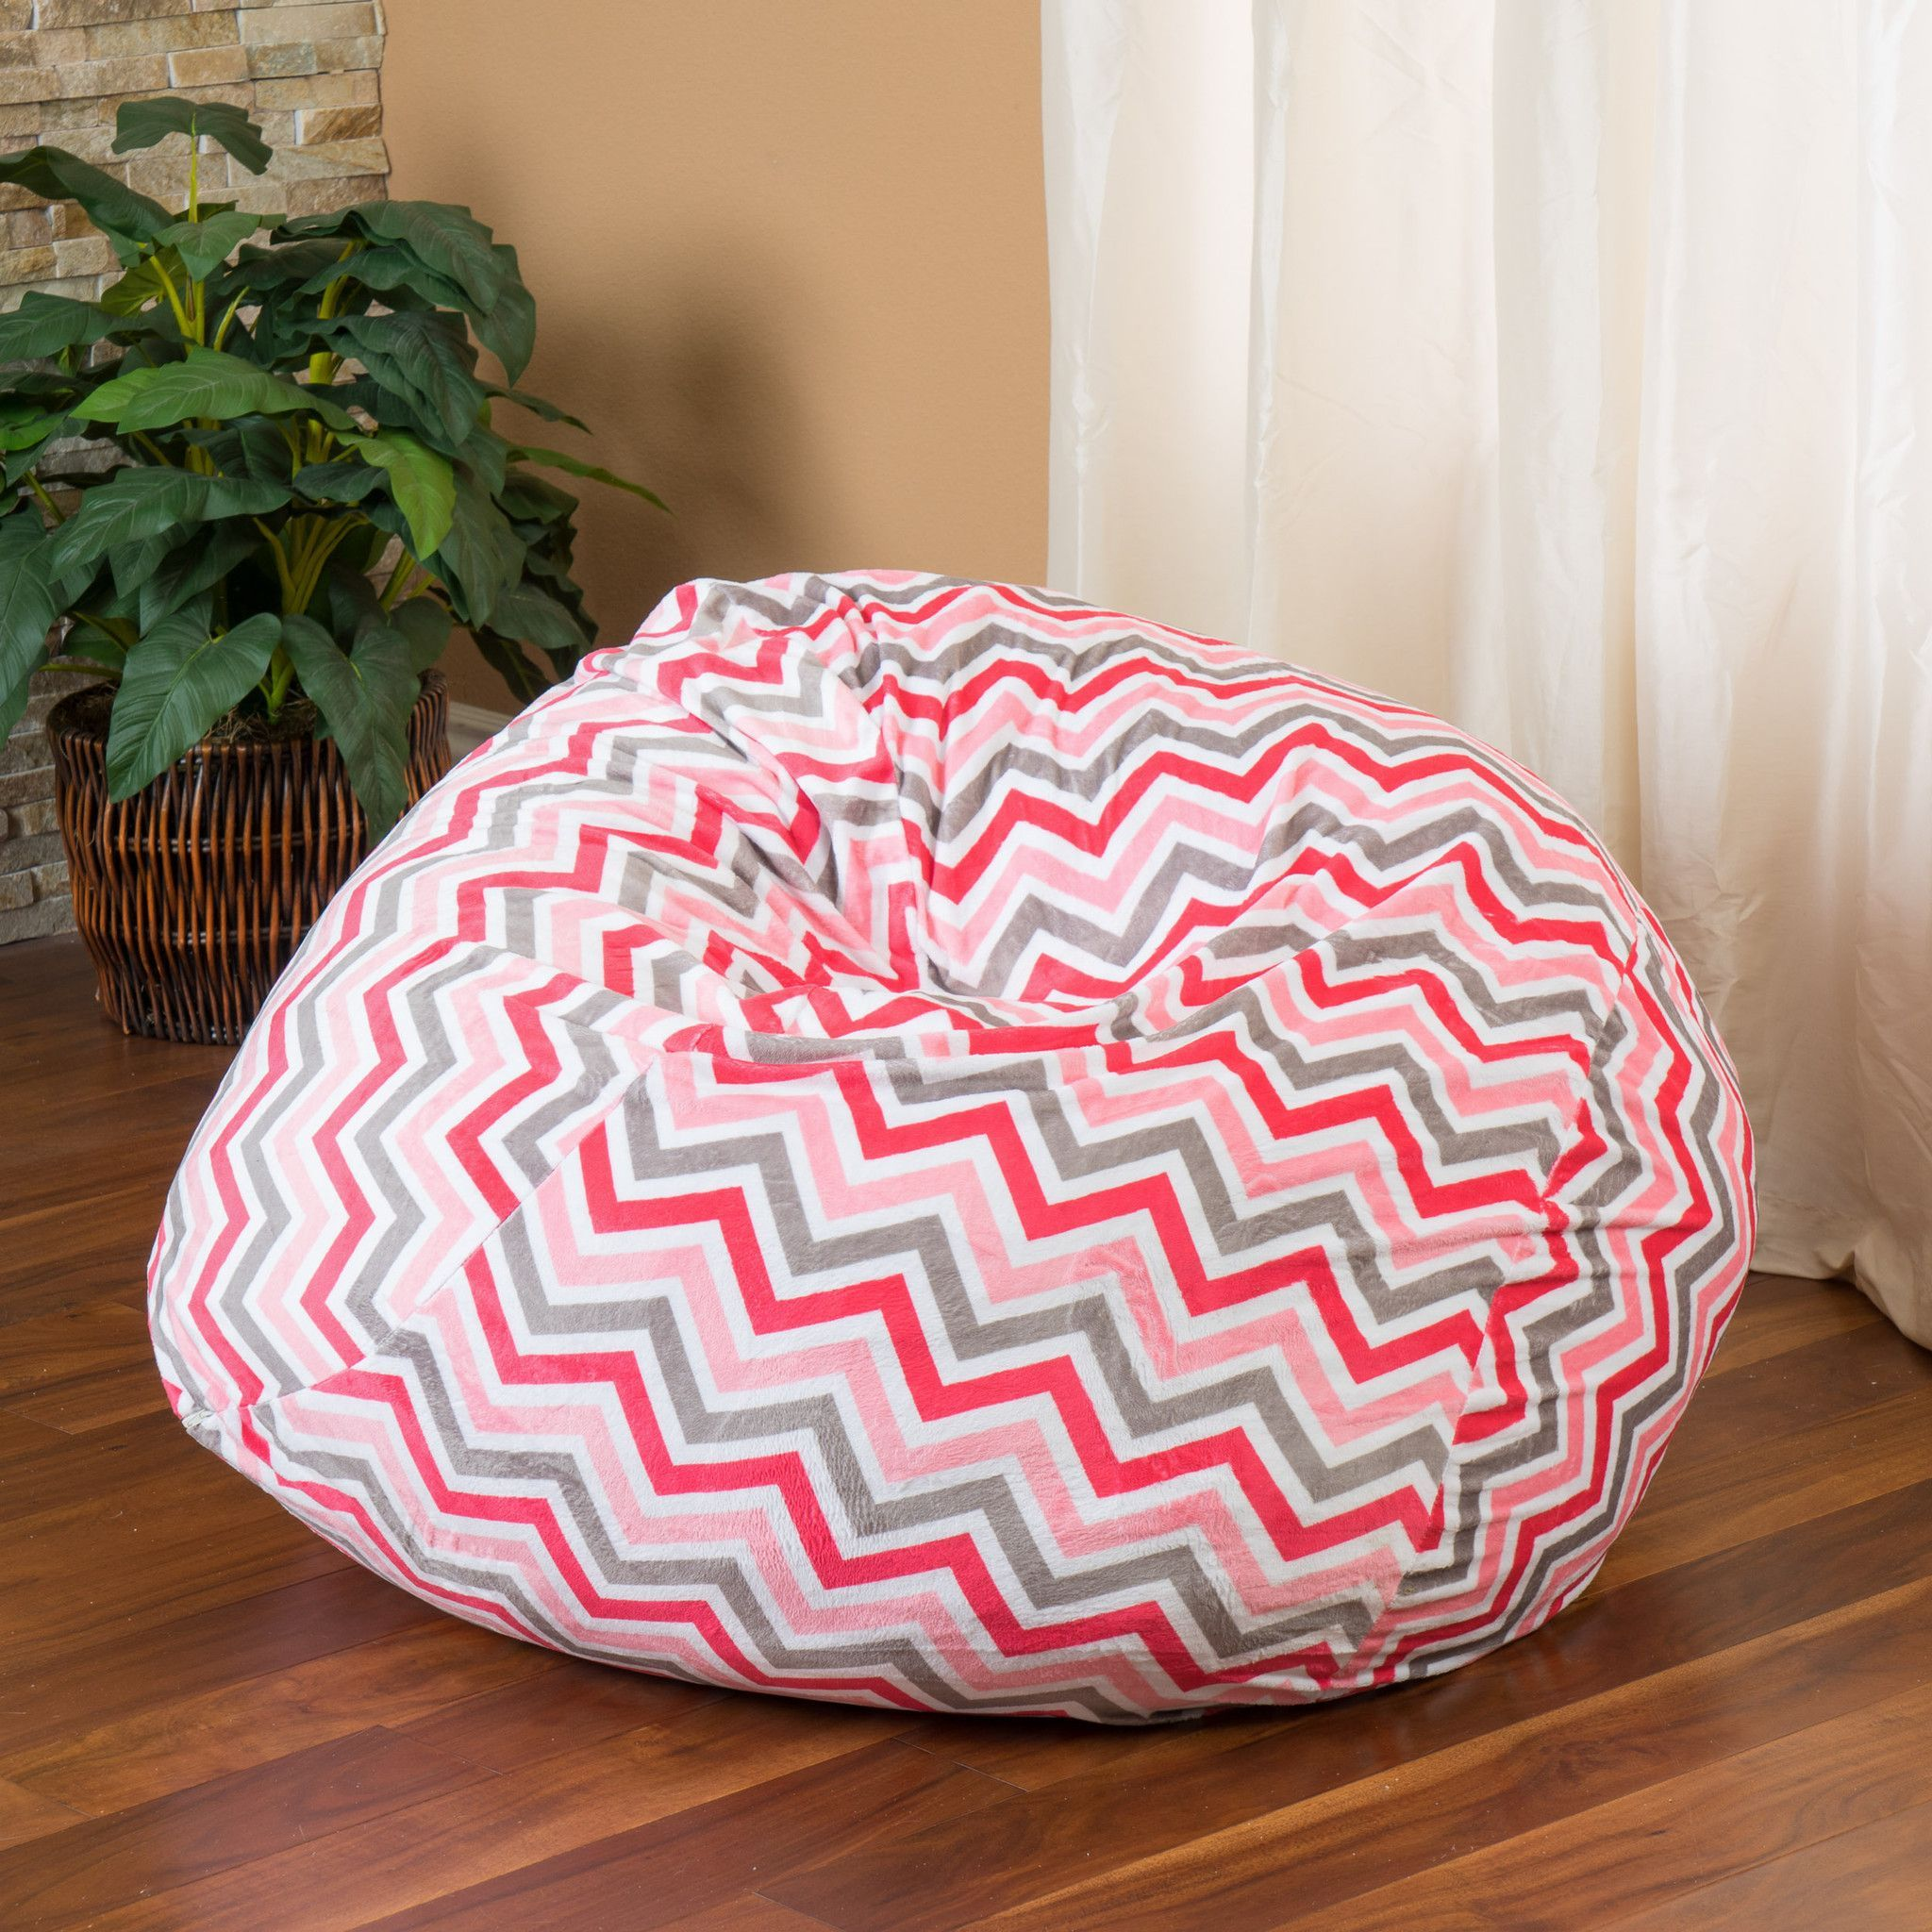 Ashley 3Ft Pink Charcoal Chevron Stripe Fabric Bean Bag Chair